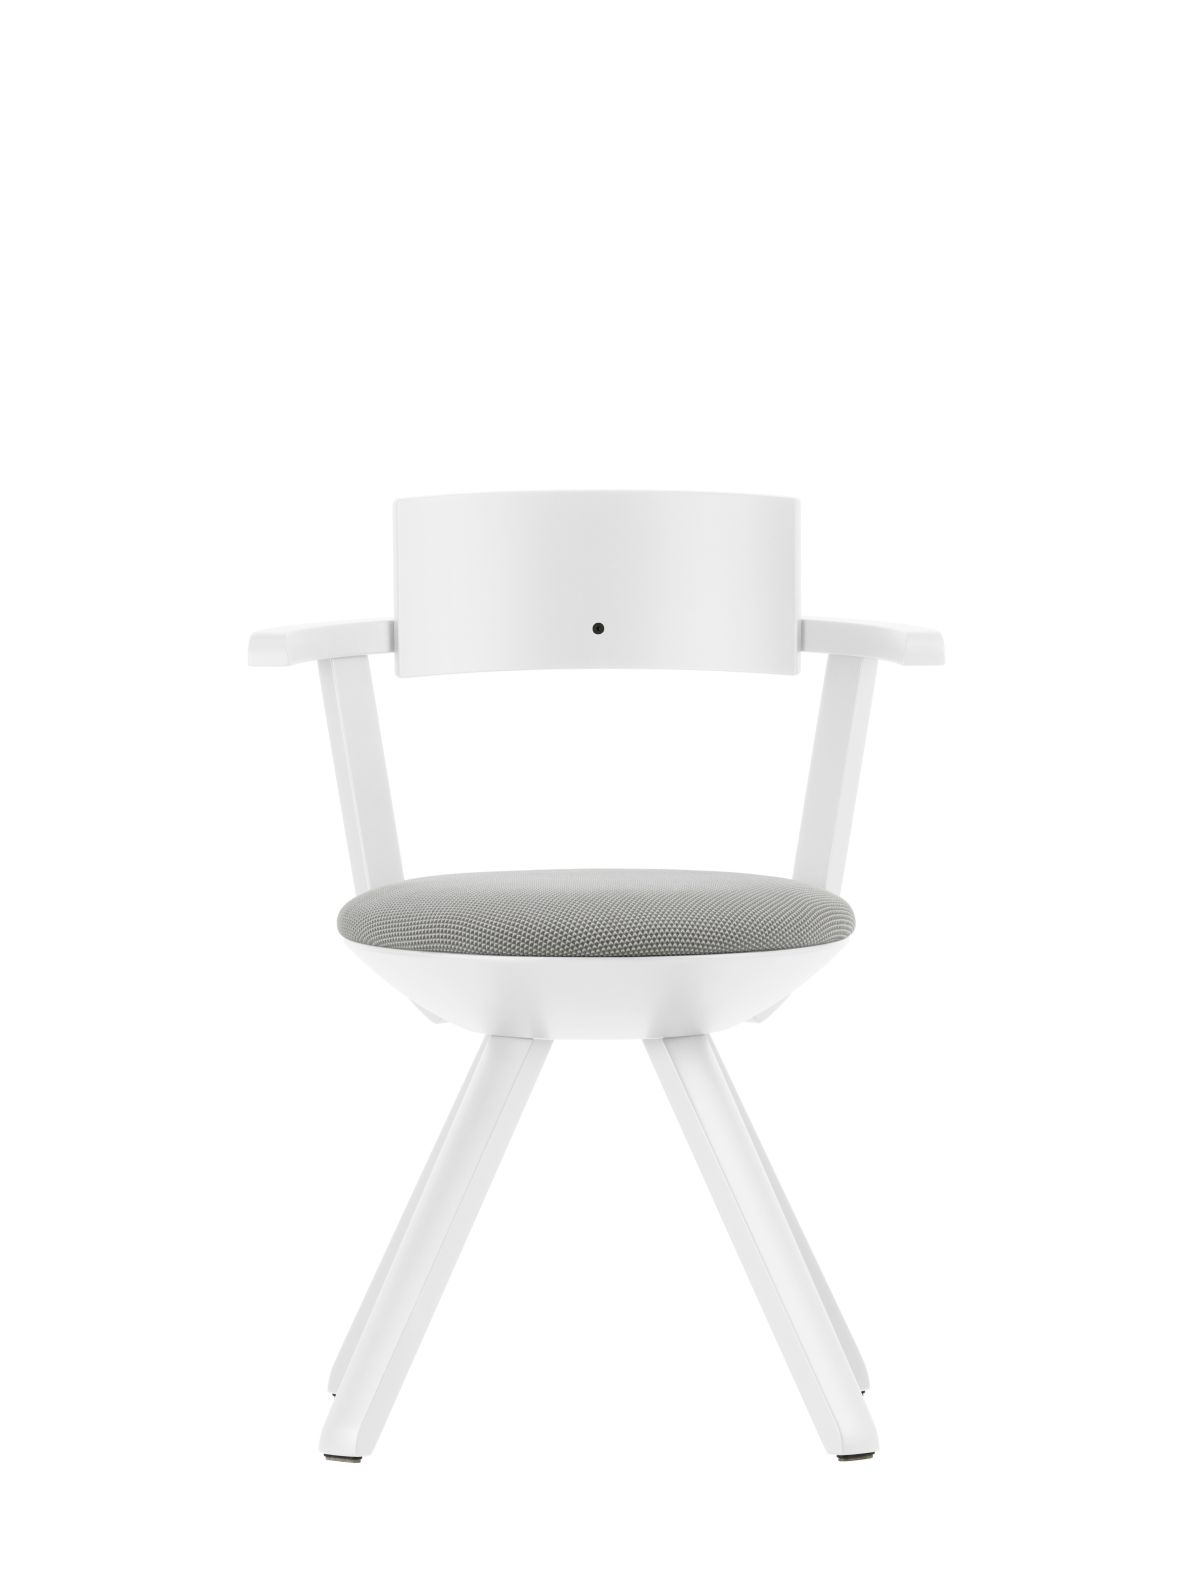 Rival-Chair-Kg002-White-Lacquer-Light-Grey-Cream-3D-Knit-Upholstery